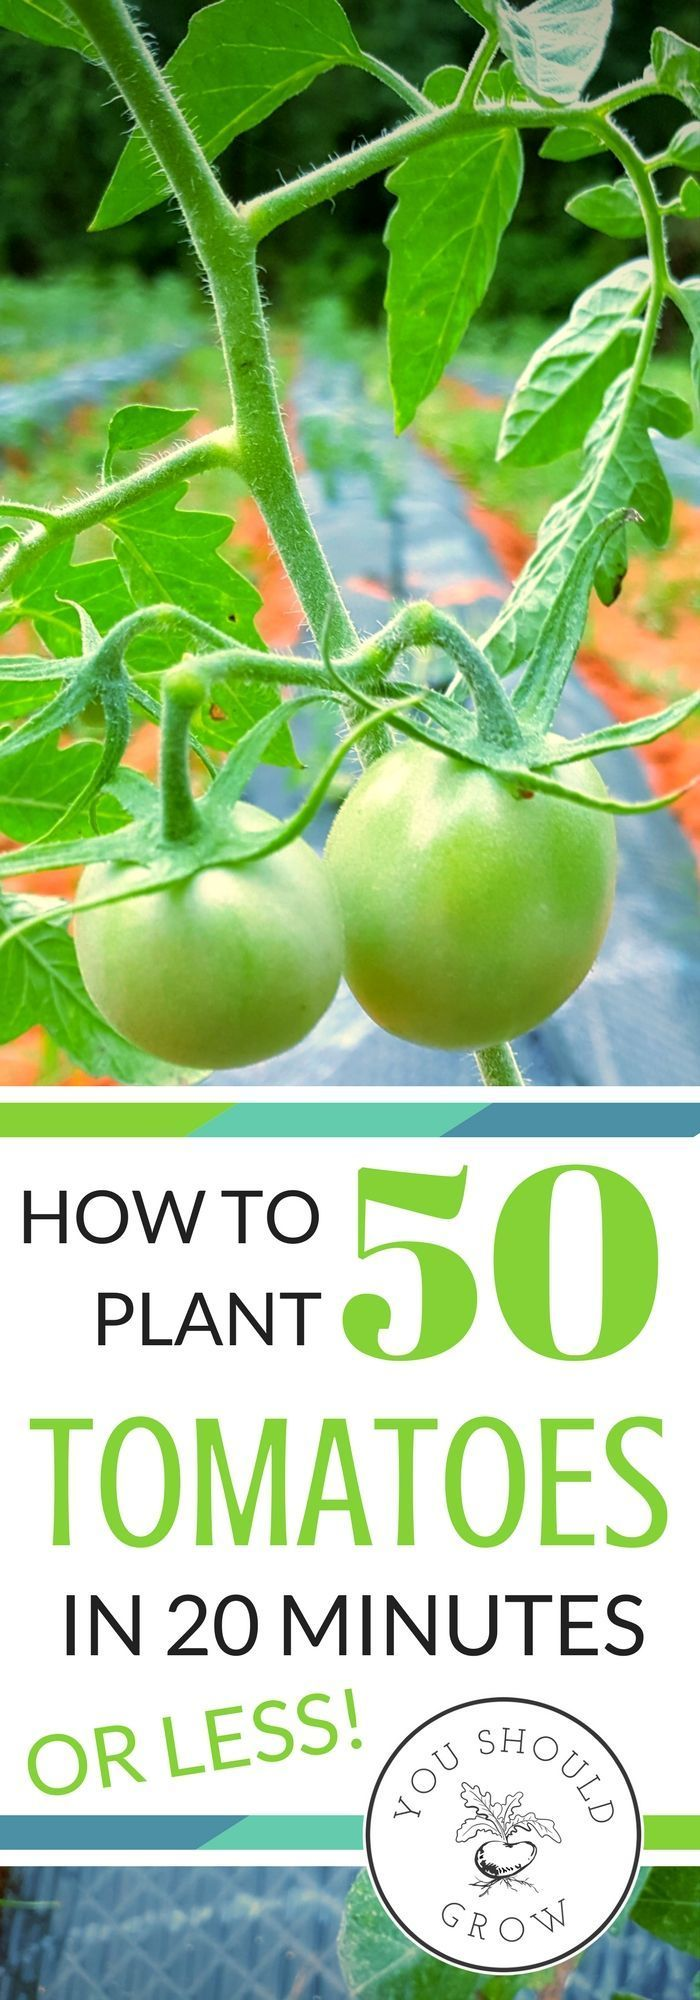 Find out the awesome tool we use to get 50 tomatoes in the ground in 20 minutes! Not only is it the fastest way to get plants in the garden, it will save you a lot of back and leg pain. Every gardener needs these amazing tools. via @whippoorwillgar